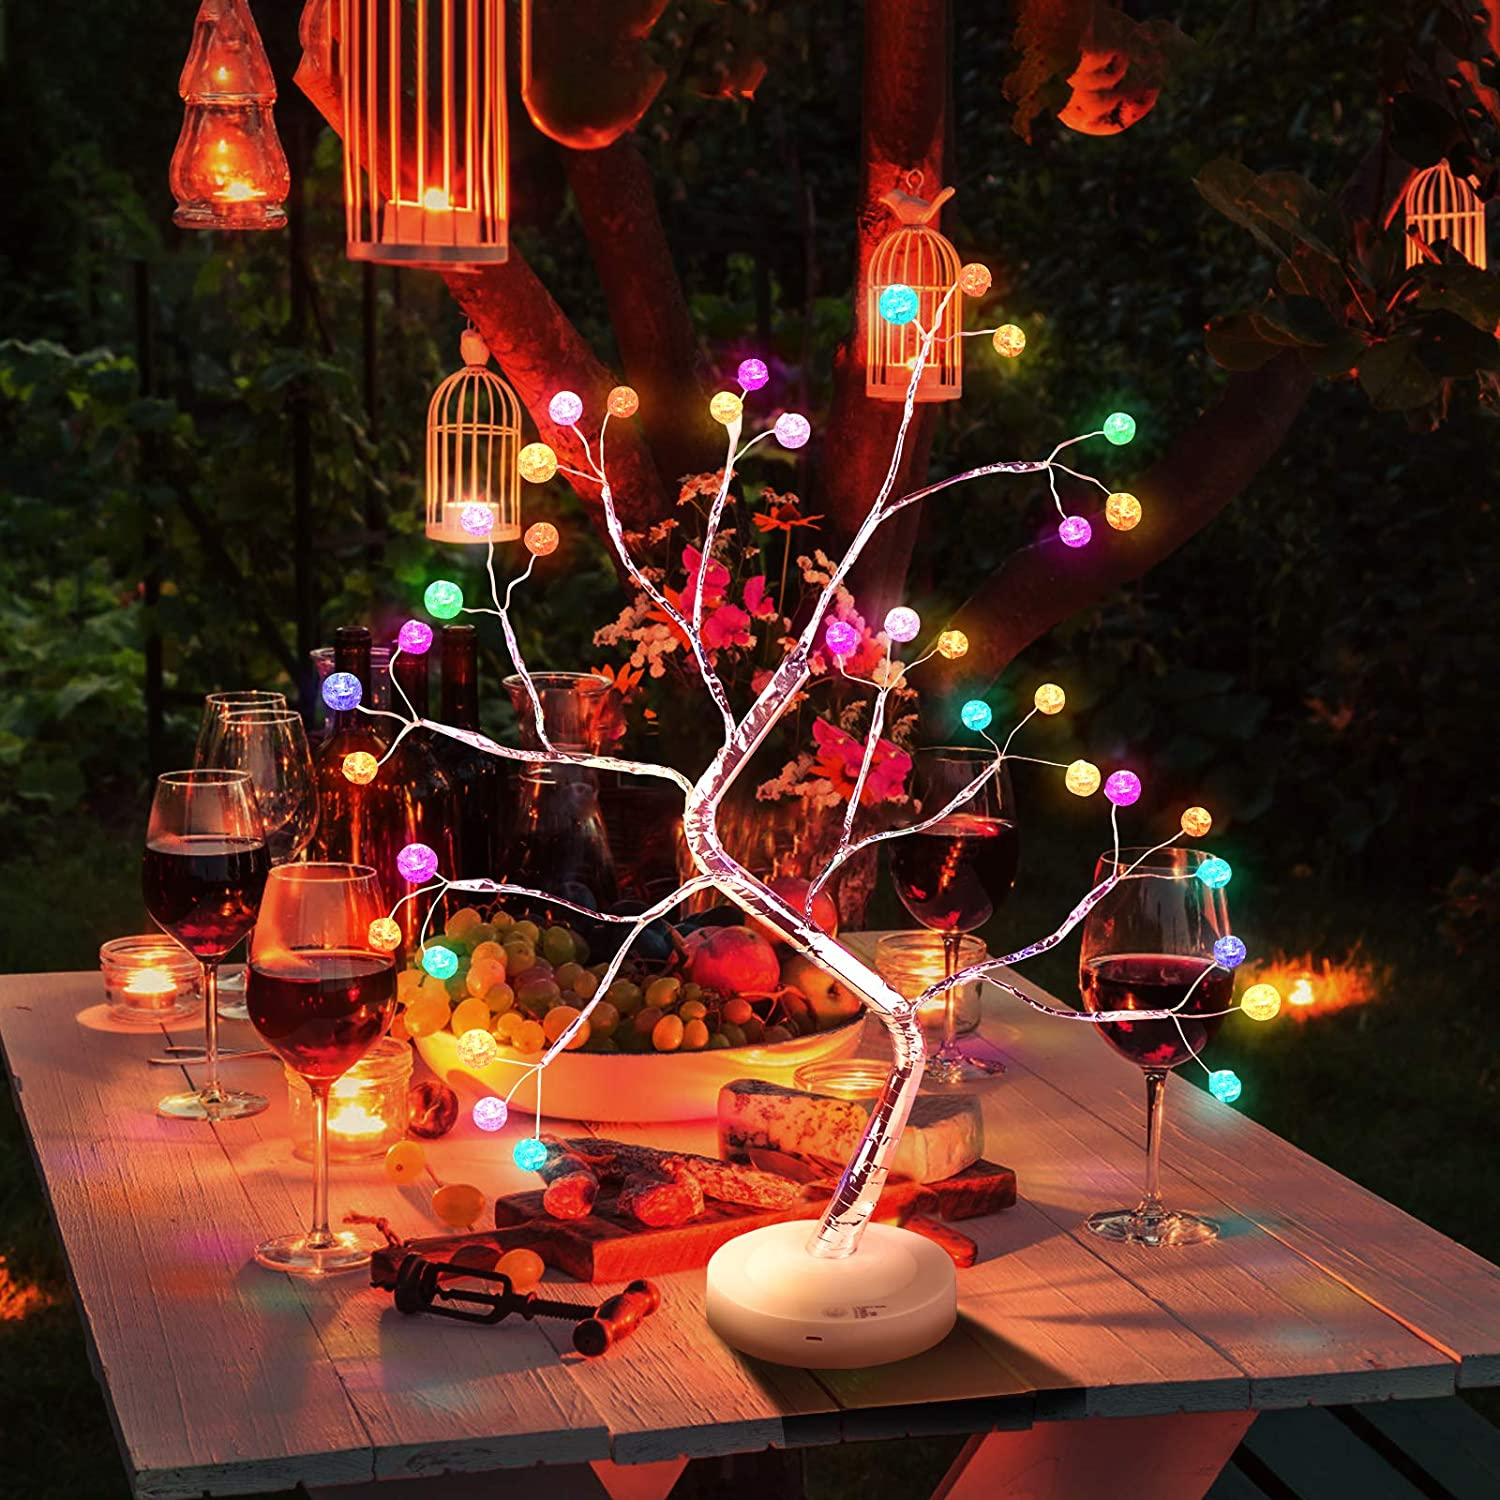 Bonsai Tree Light, DIY LED Desk Tree Lamp with Remote Control 16 Color 36 LED Crack Shaped lamp Adjustable Branches Desk Table Decor for Christmas Party Home Decoration (Battery/USB Operated)